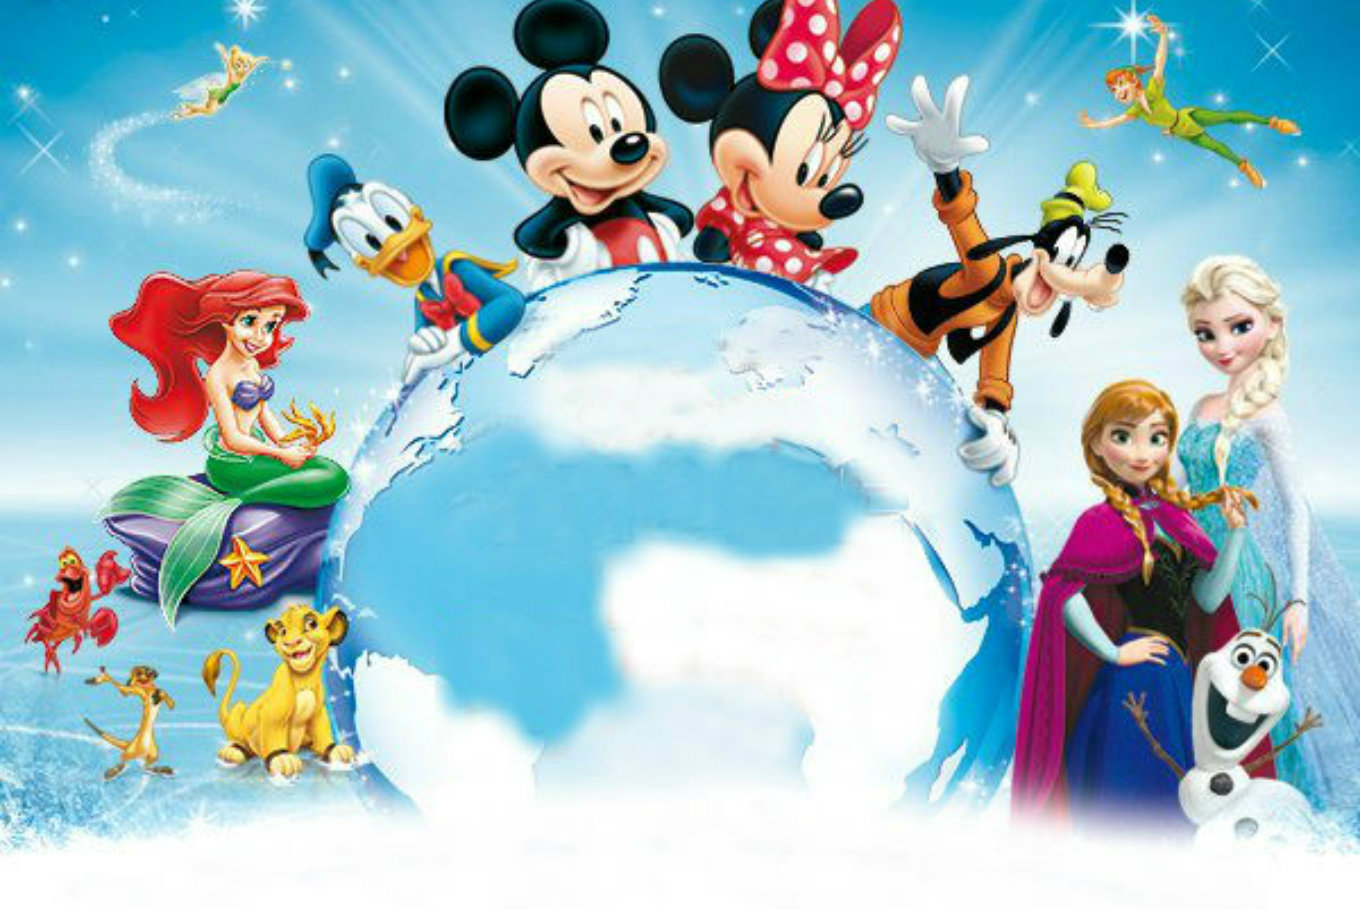 'Disney on Ice: Un mundo mágico' en Wizink Center (Palacio de los Deportes) (Madrid)